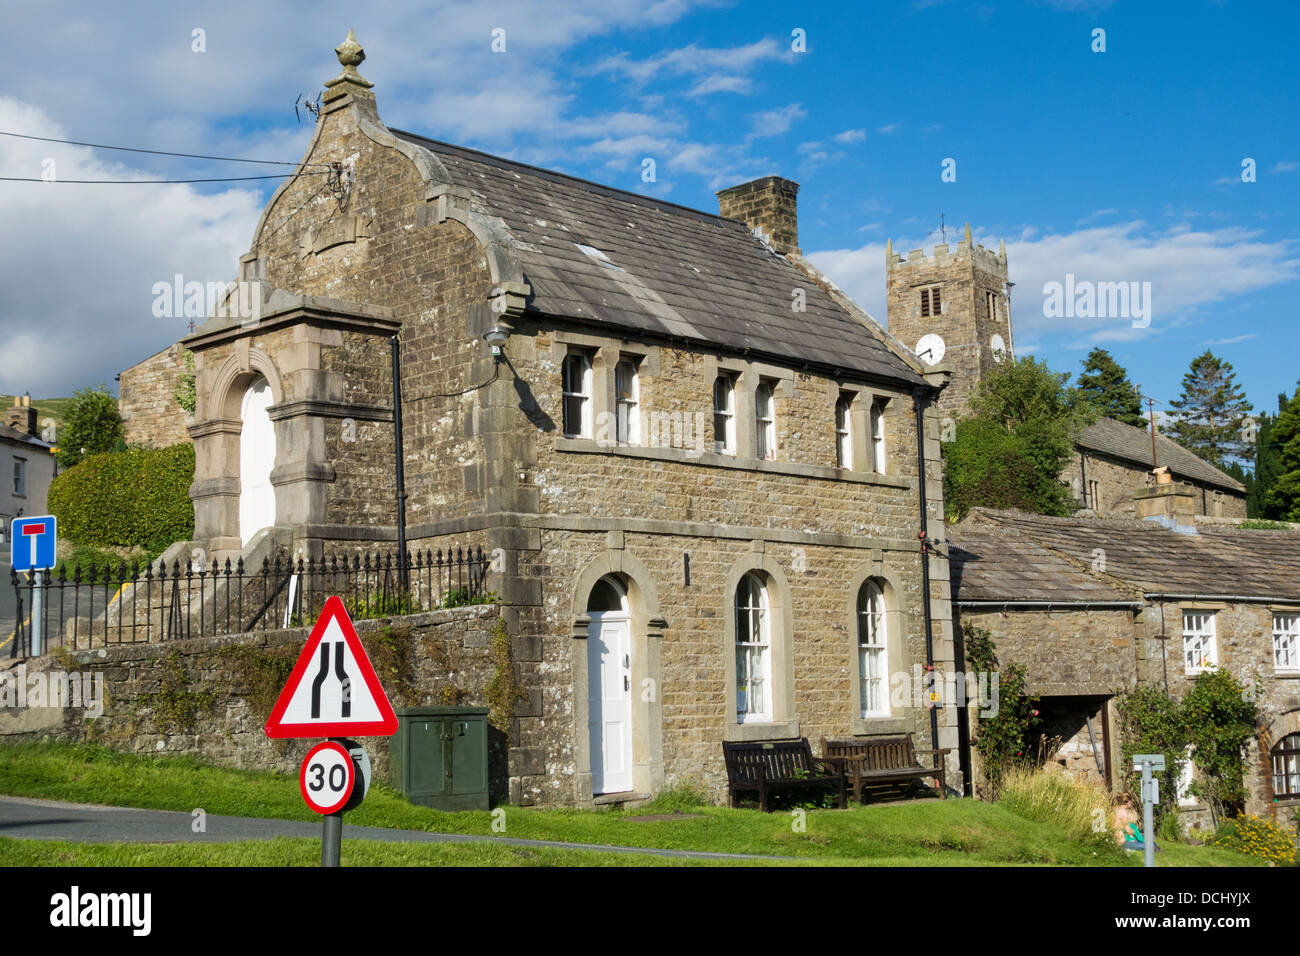 Literary Institute building in Muker village, Swaledale, Yorkshire Dales National Park, England, UK - Stock Image